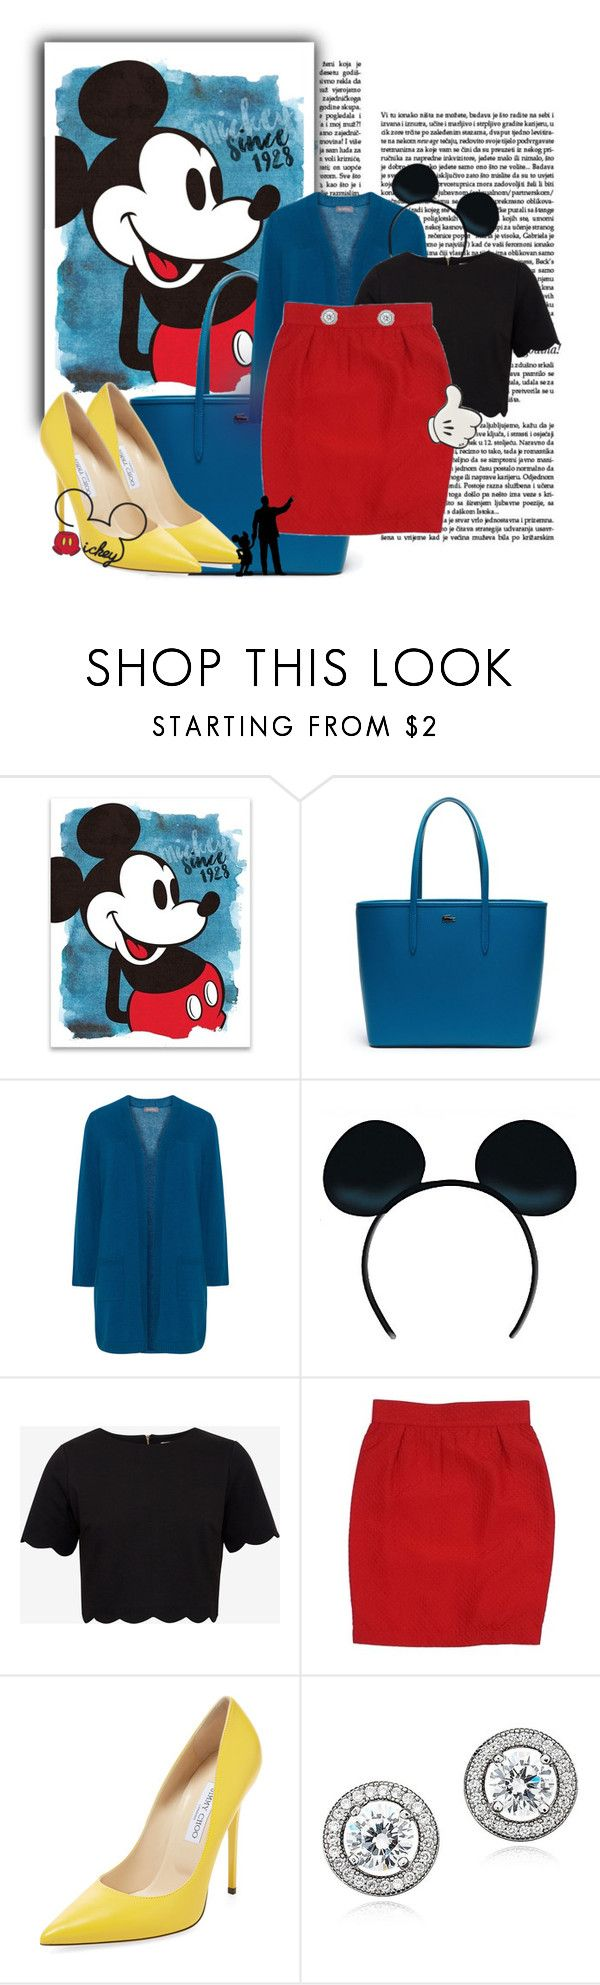 """""""Mickey Mouse"""" by melissaandjasperforever ❤ liked on Polyvore featuring Lacoste, Samoon, Ted Baker, Thierry Mugler, Jimmy Choo, Crislu and Anya Hindmarch"""